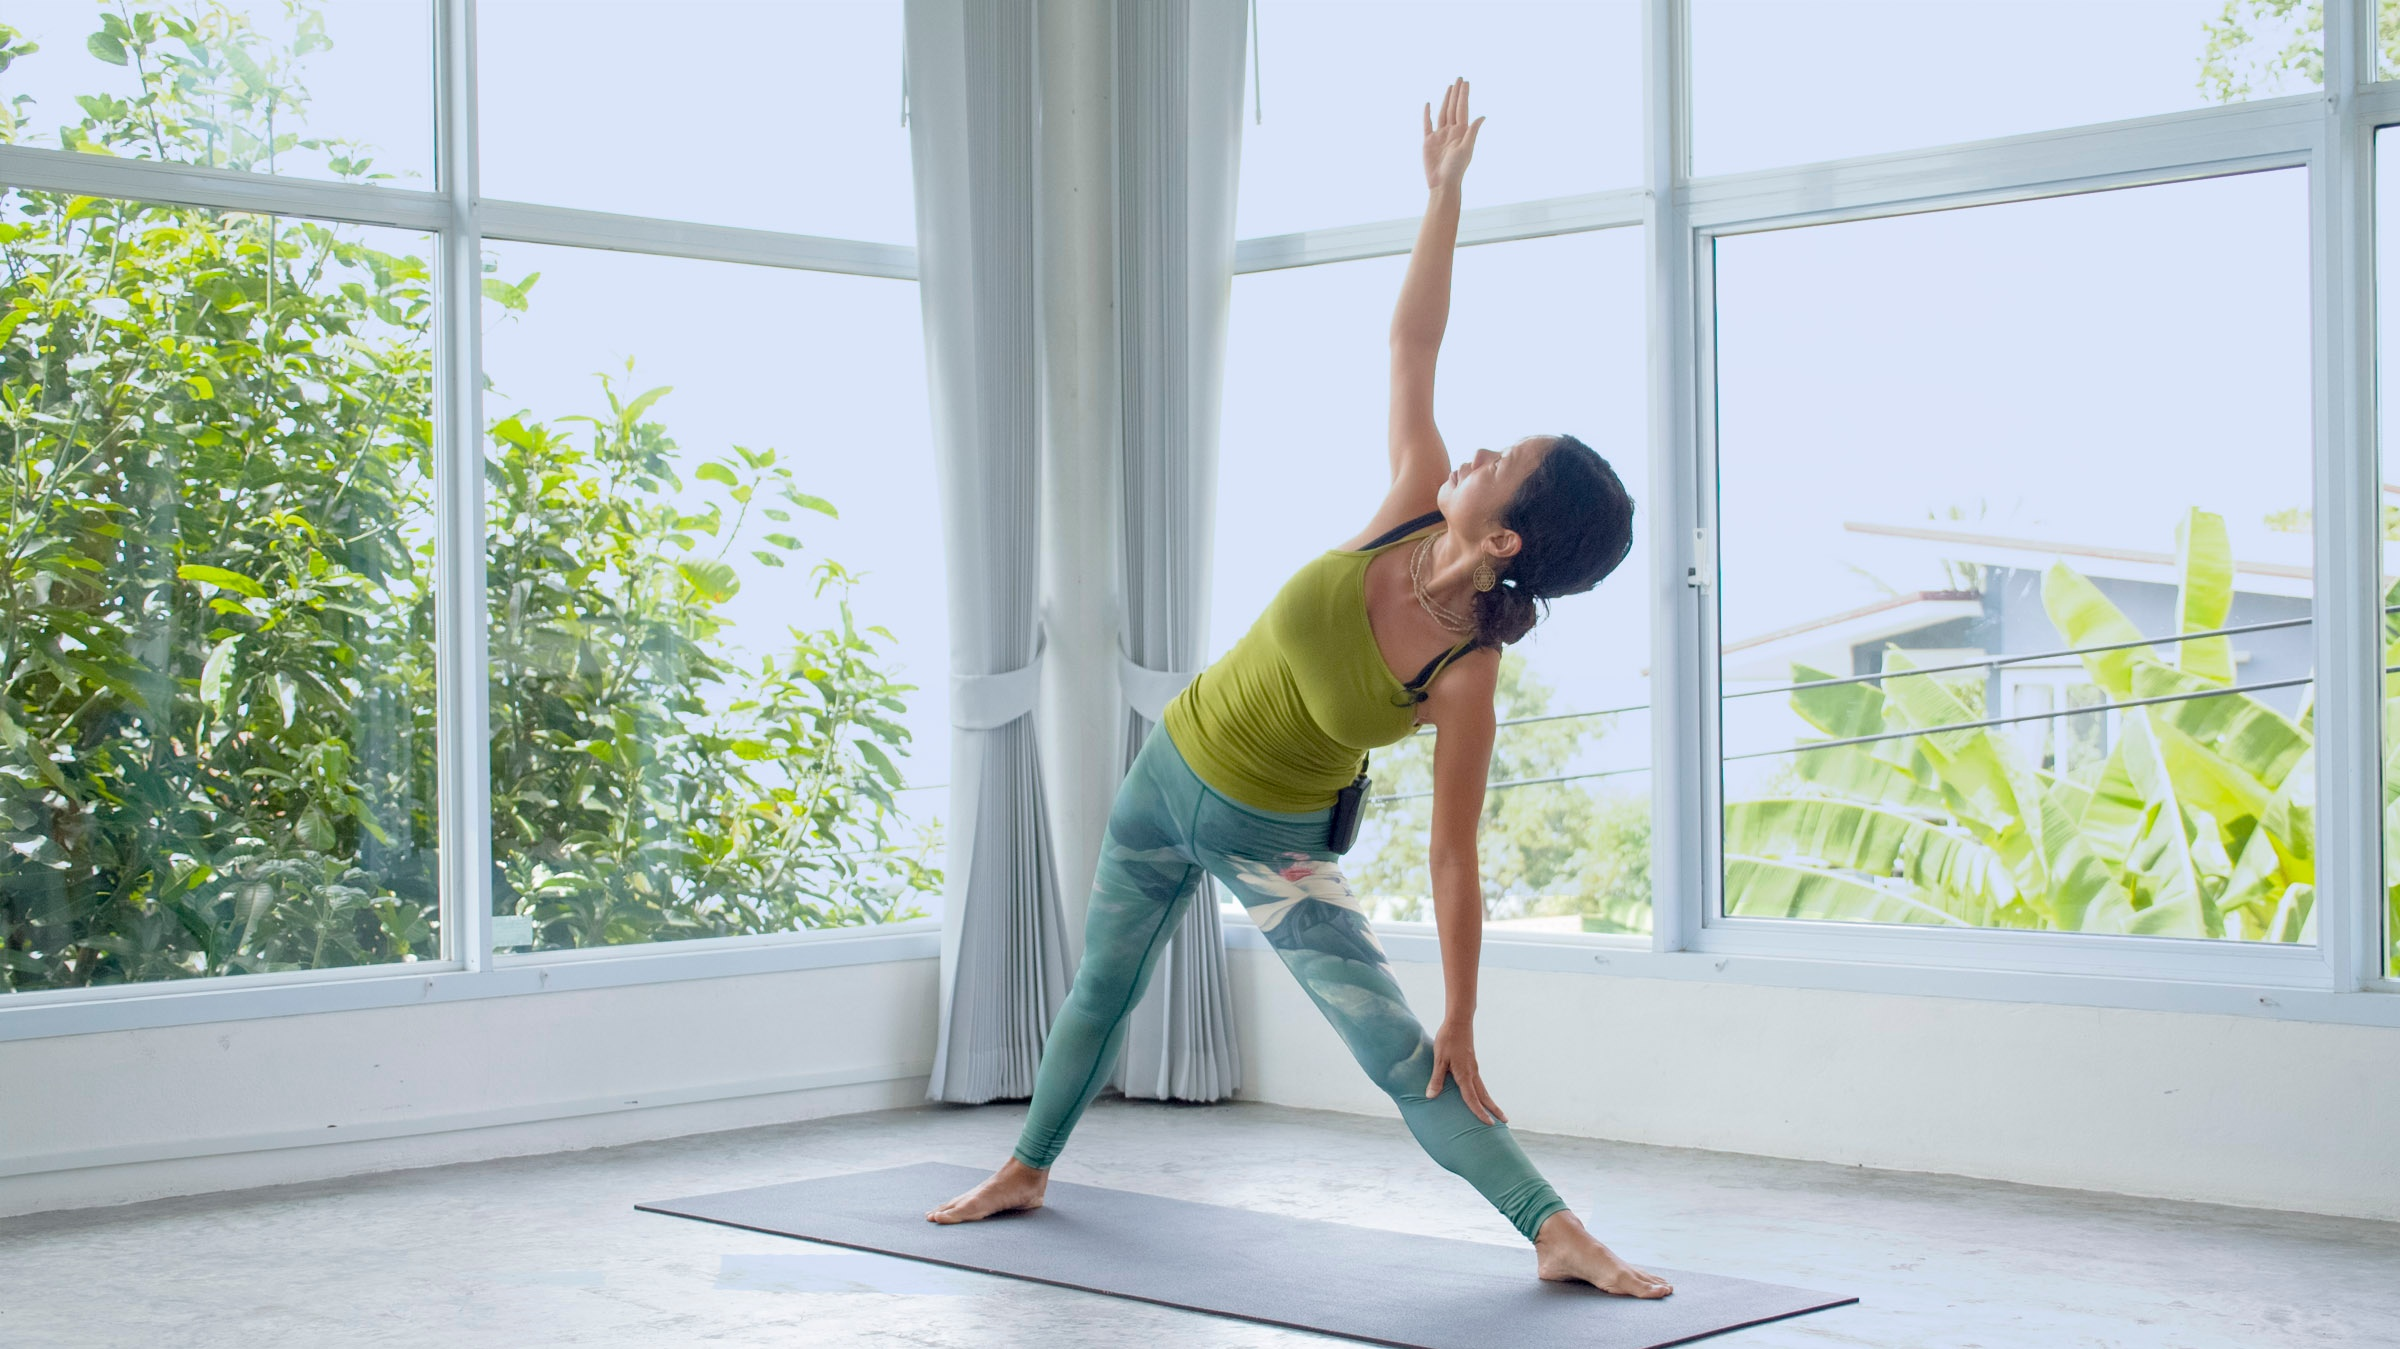 Yoga Teacher Training Free Trial